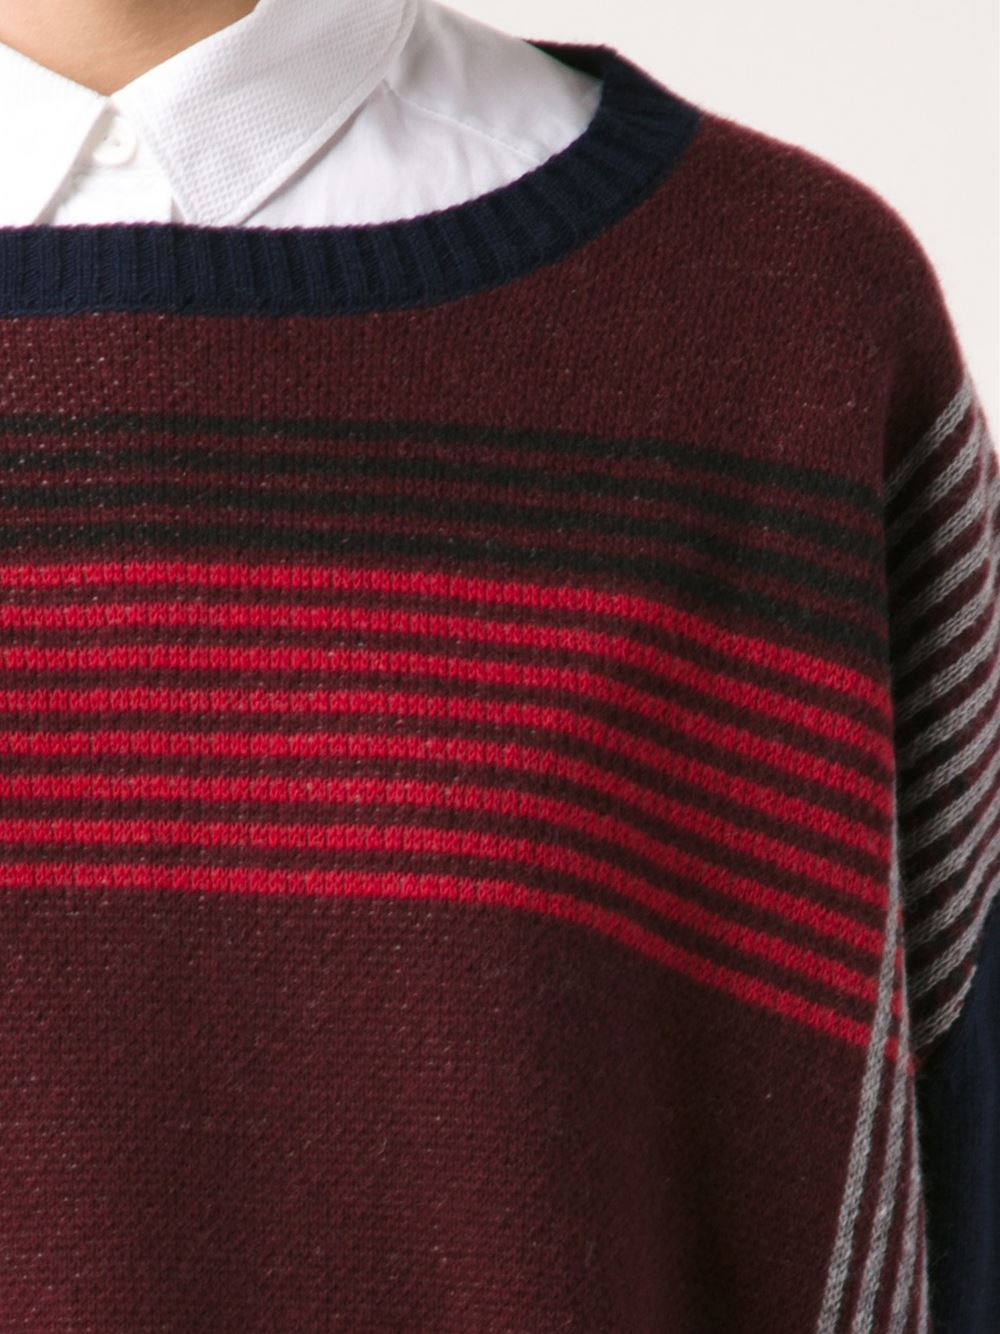 Band Of Outsiders Plaid Intarsia Pullover Sweater In Red